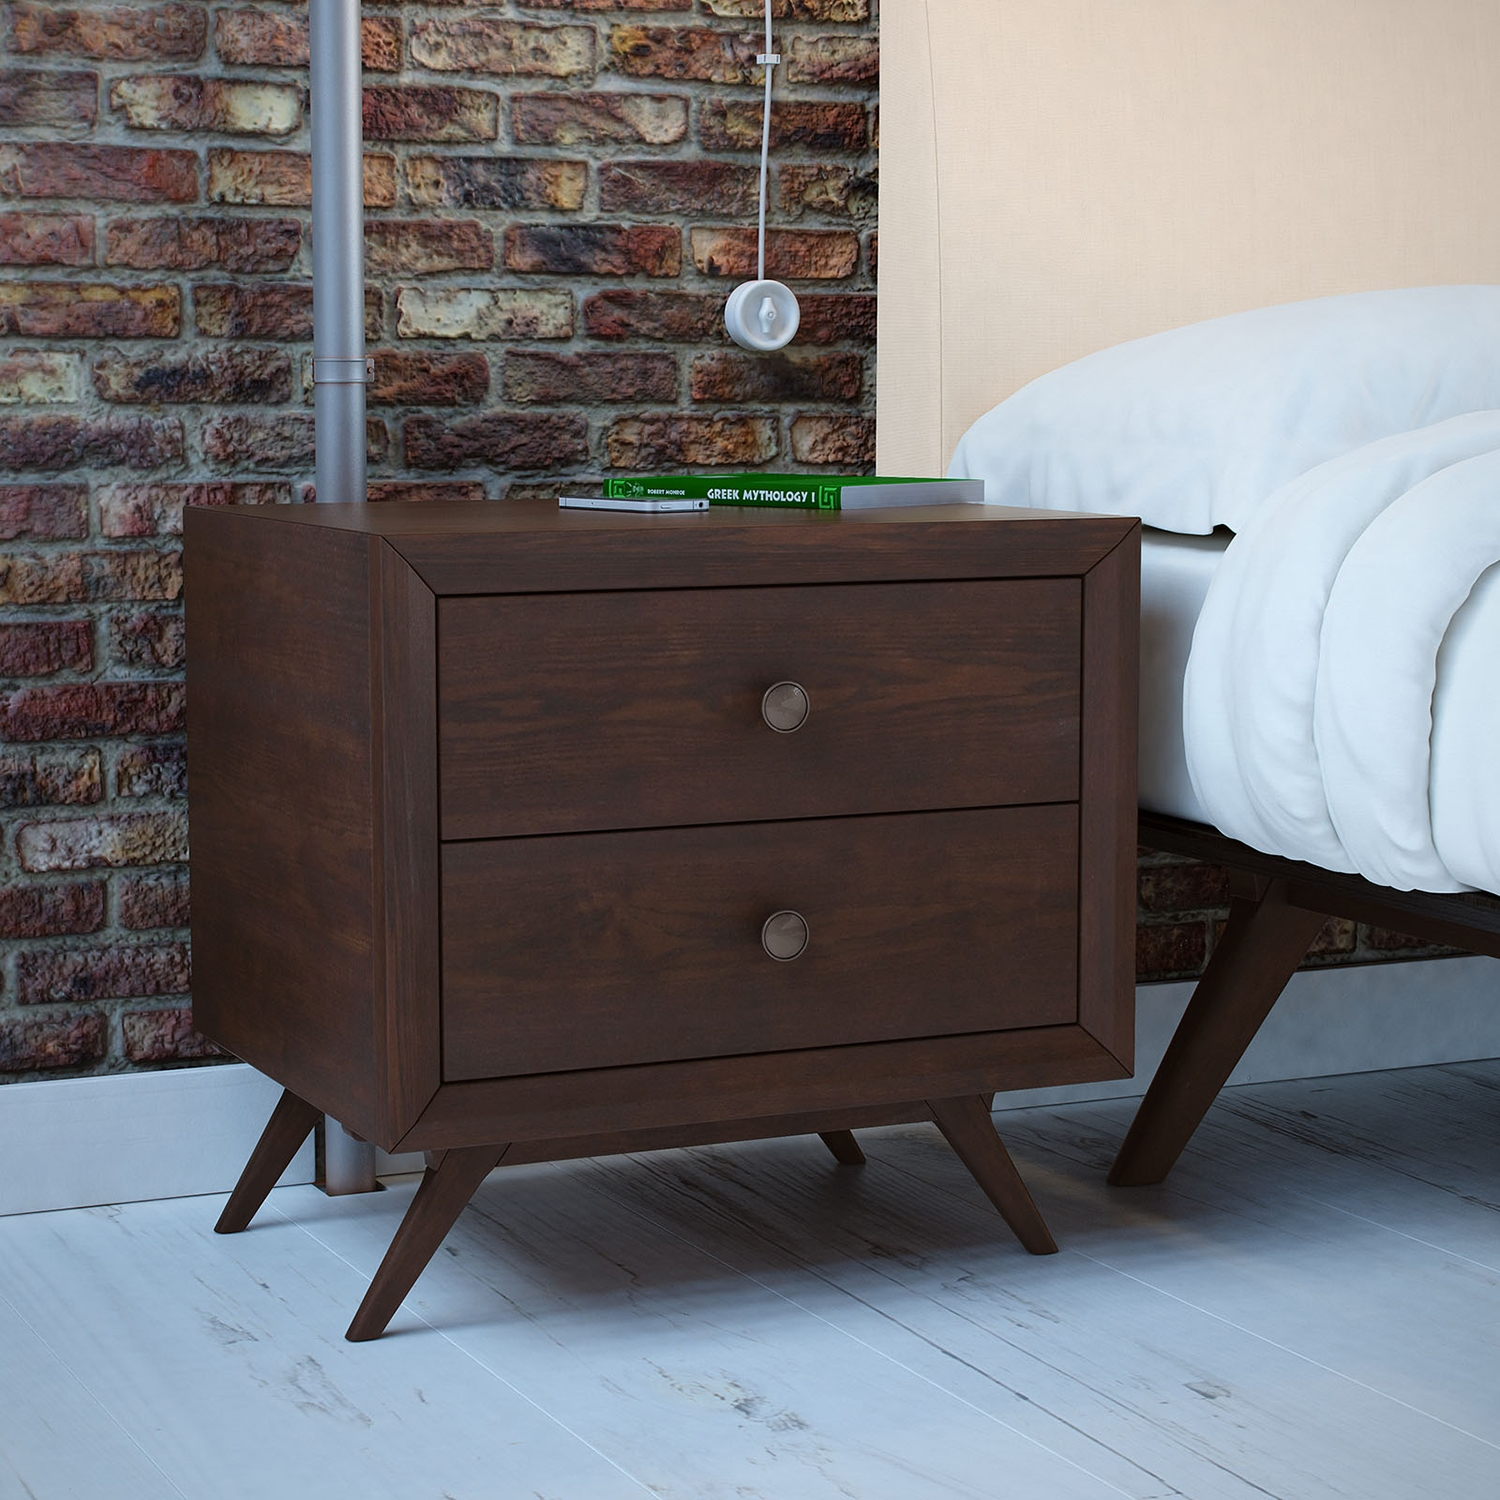 Tracy 2-Drawer Nightstand - Cappuccino - EEI-MOD-5240-CAP